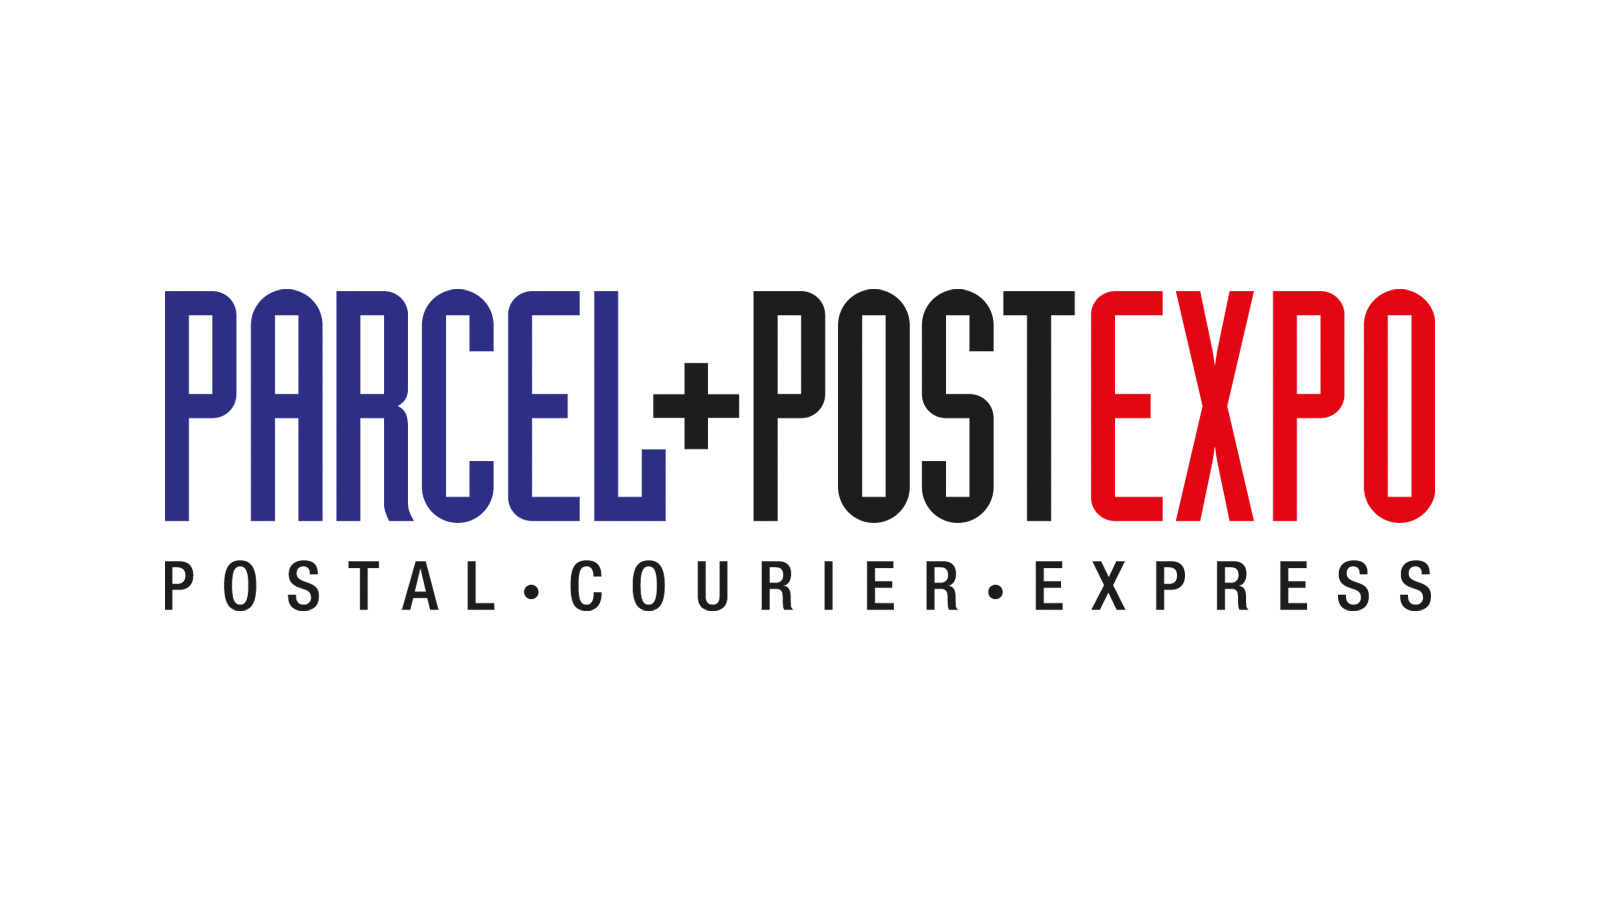 Parcel+Post Expo 2020